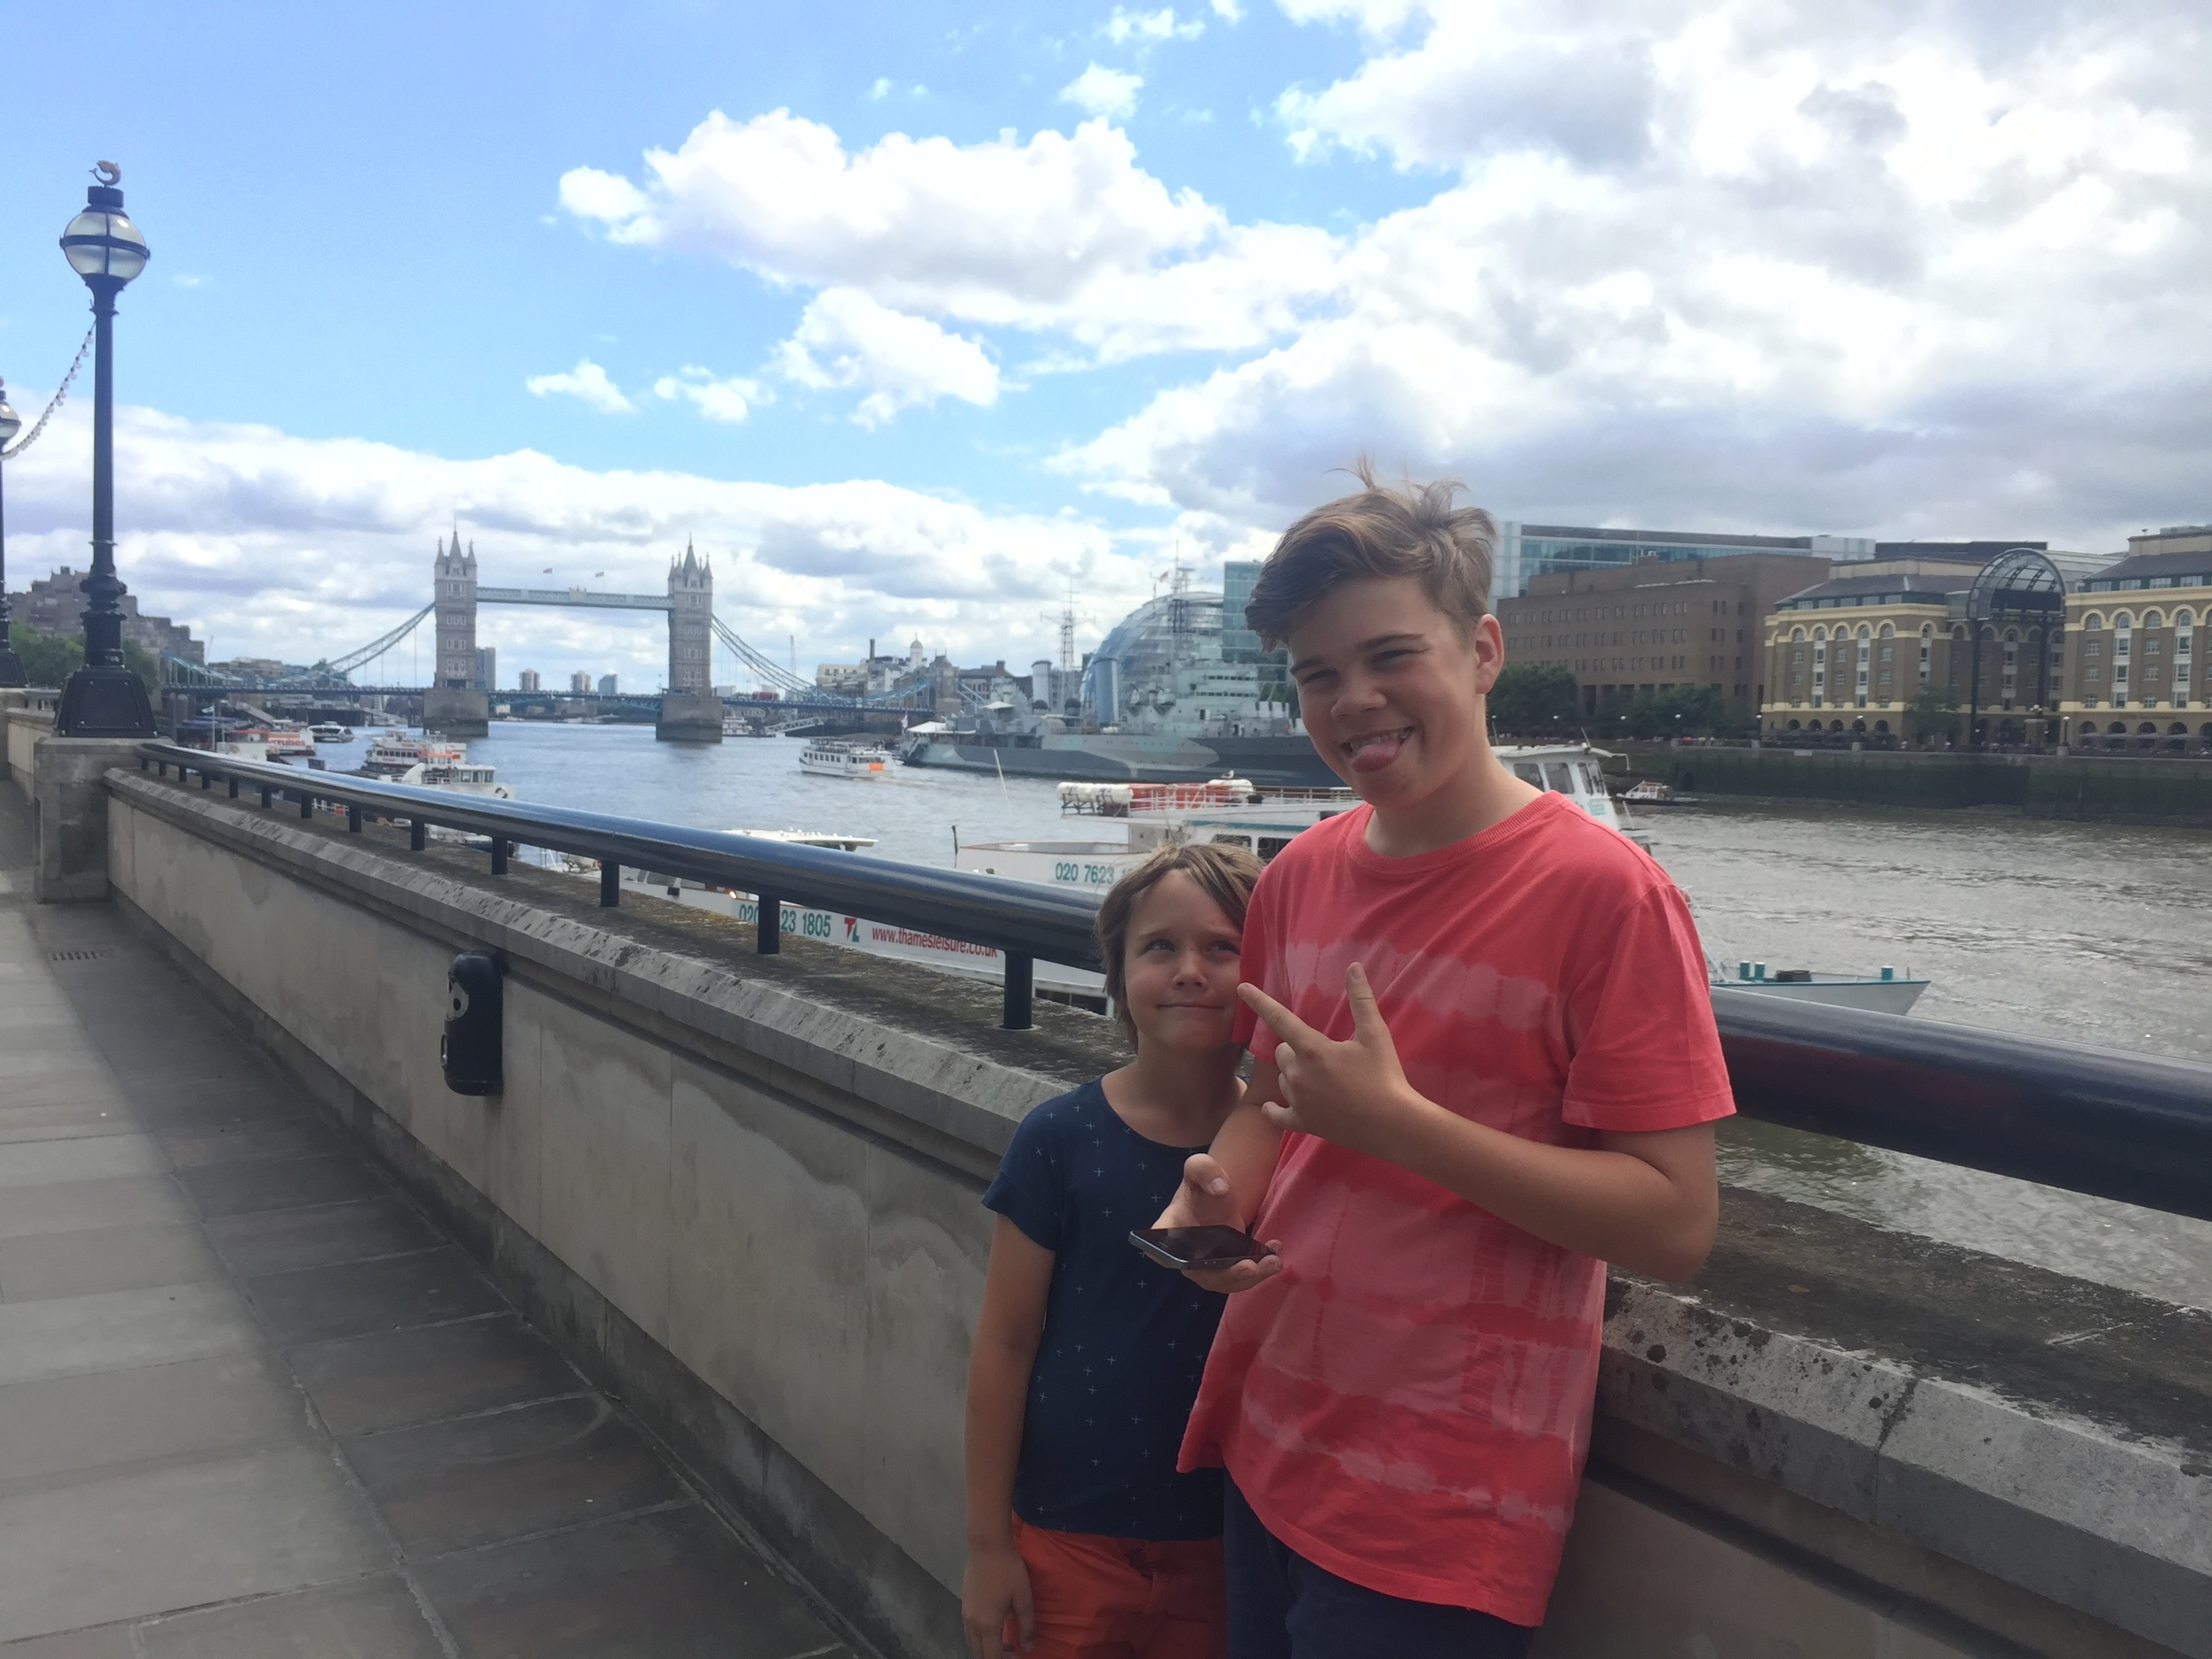 We were invited to take the family to visit the London Tower Bridge, to give the Trail app a try.  The Family Trail app is an app designed to complement your visit to the London Tower Bridge. It gives you an interactive experience allowing you a chance to explore the bridge and its workings in a unique and fun way. The app has an educational angle so you can learn lots of interesting facts and history about the bridge.